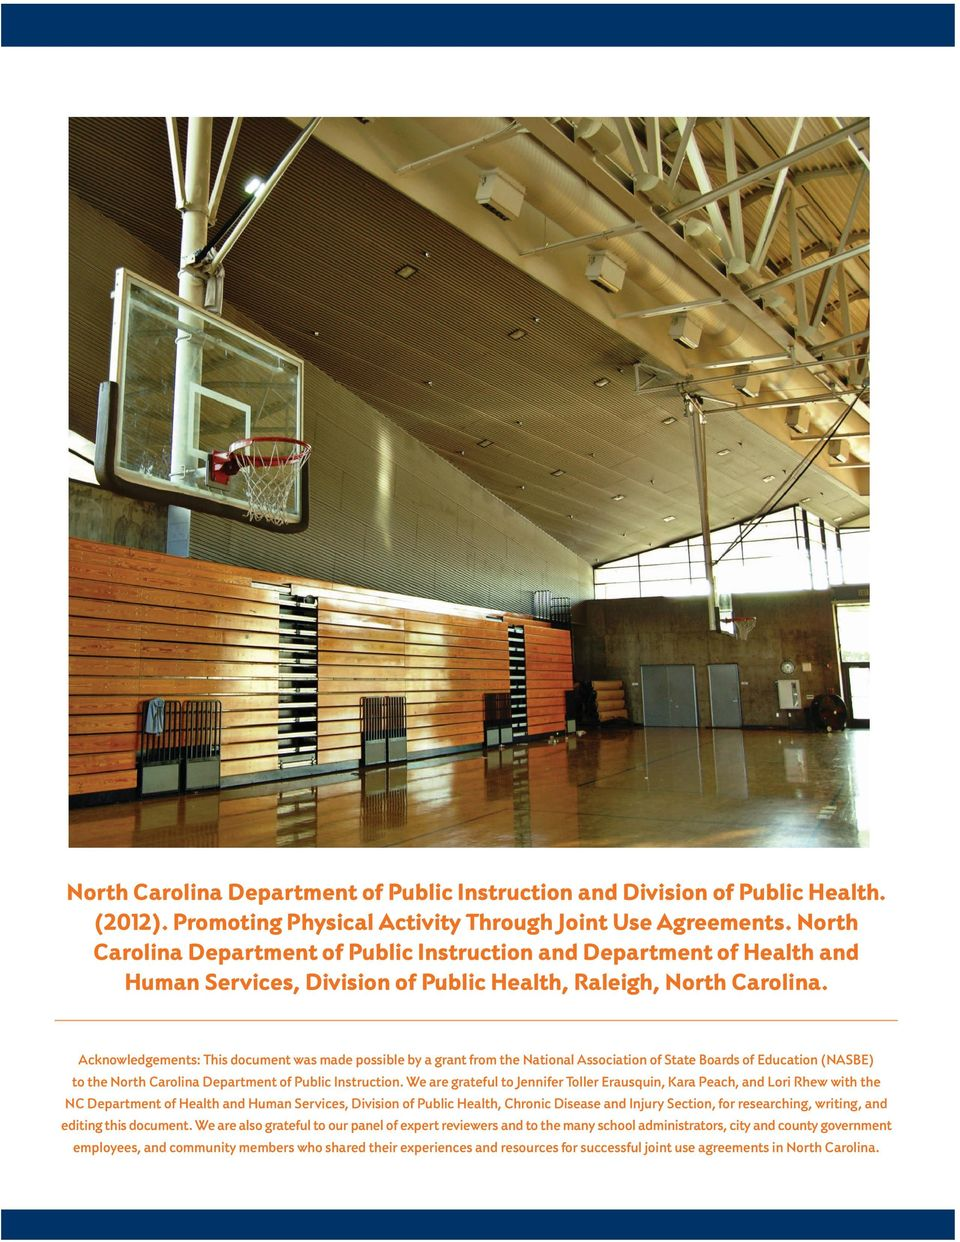 Acknowledgements: This document was made possible by a grant from the National Association of State Boards of Education (NASBE) to the North Carolina Department of Public Instruction.